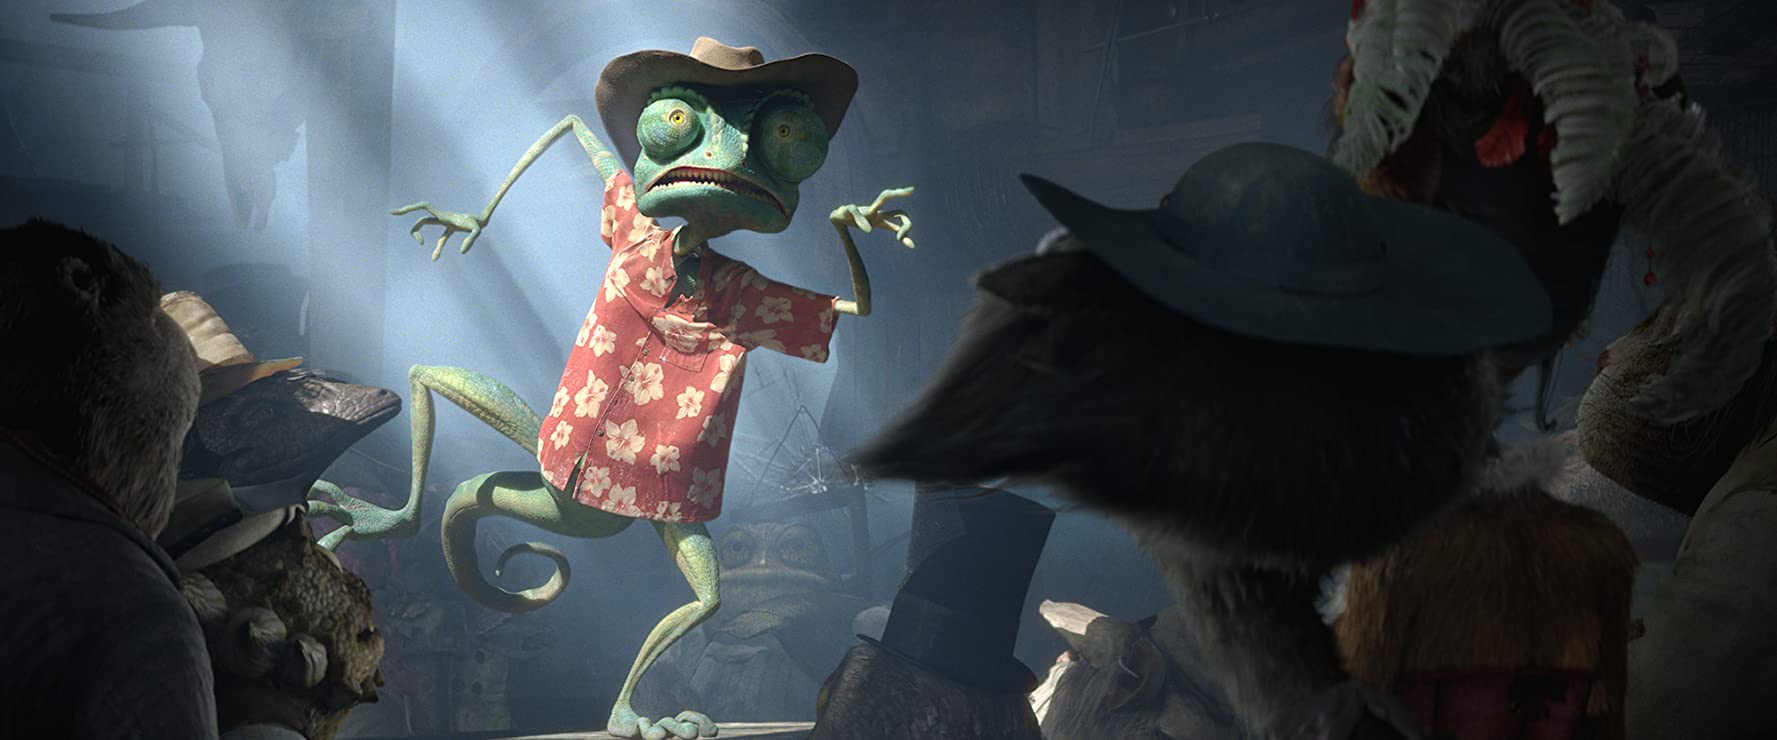 Johnny Depp in Rango (2011)